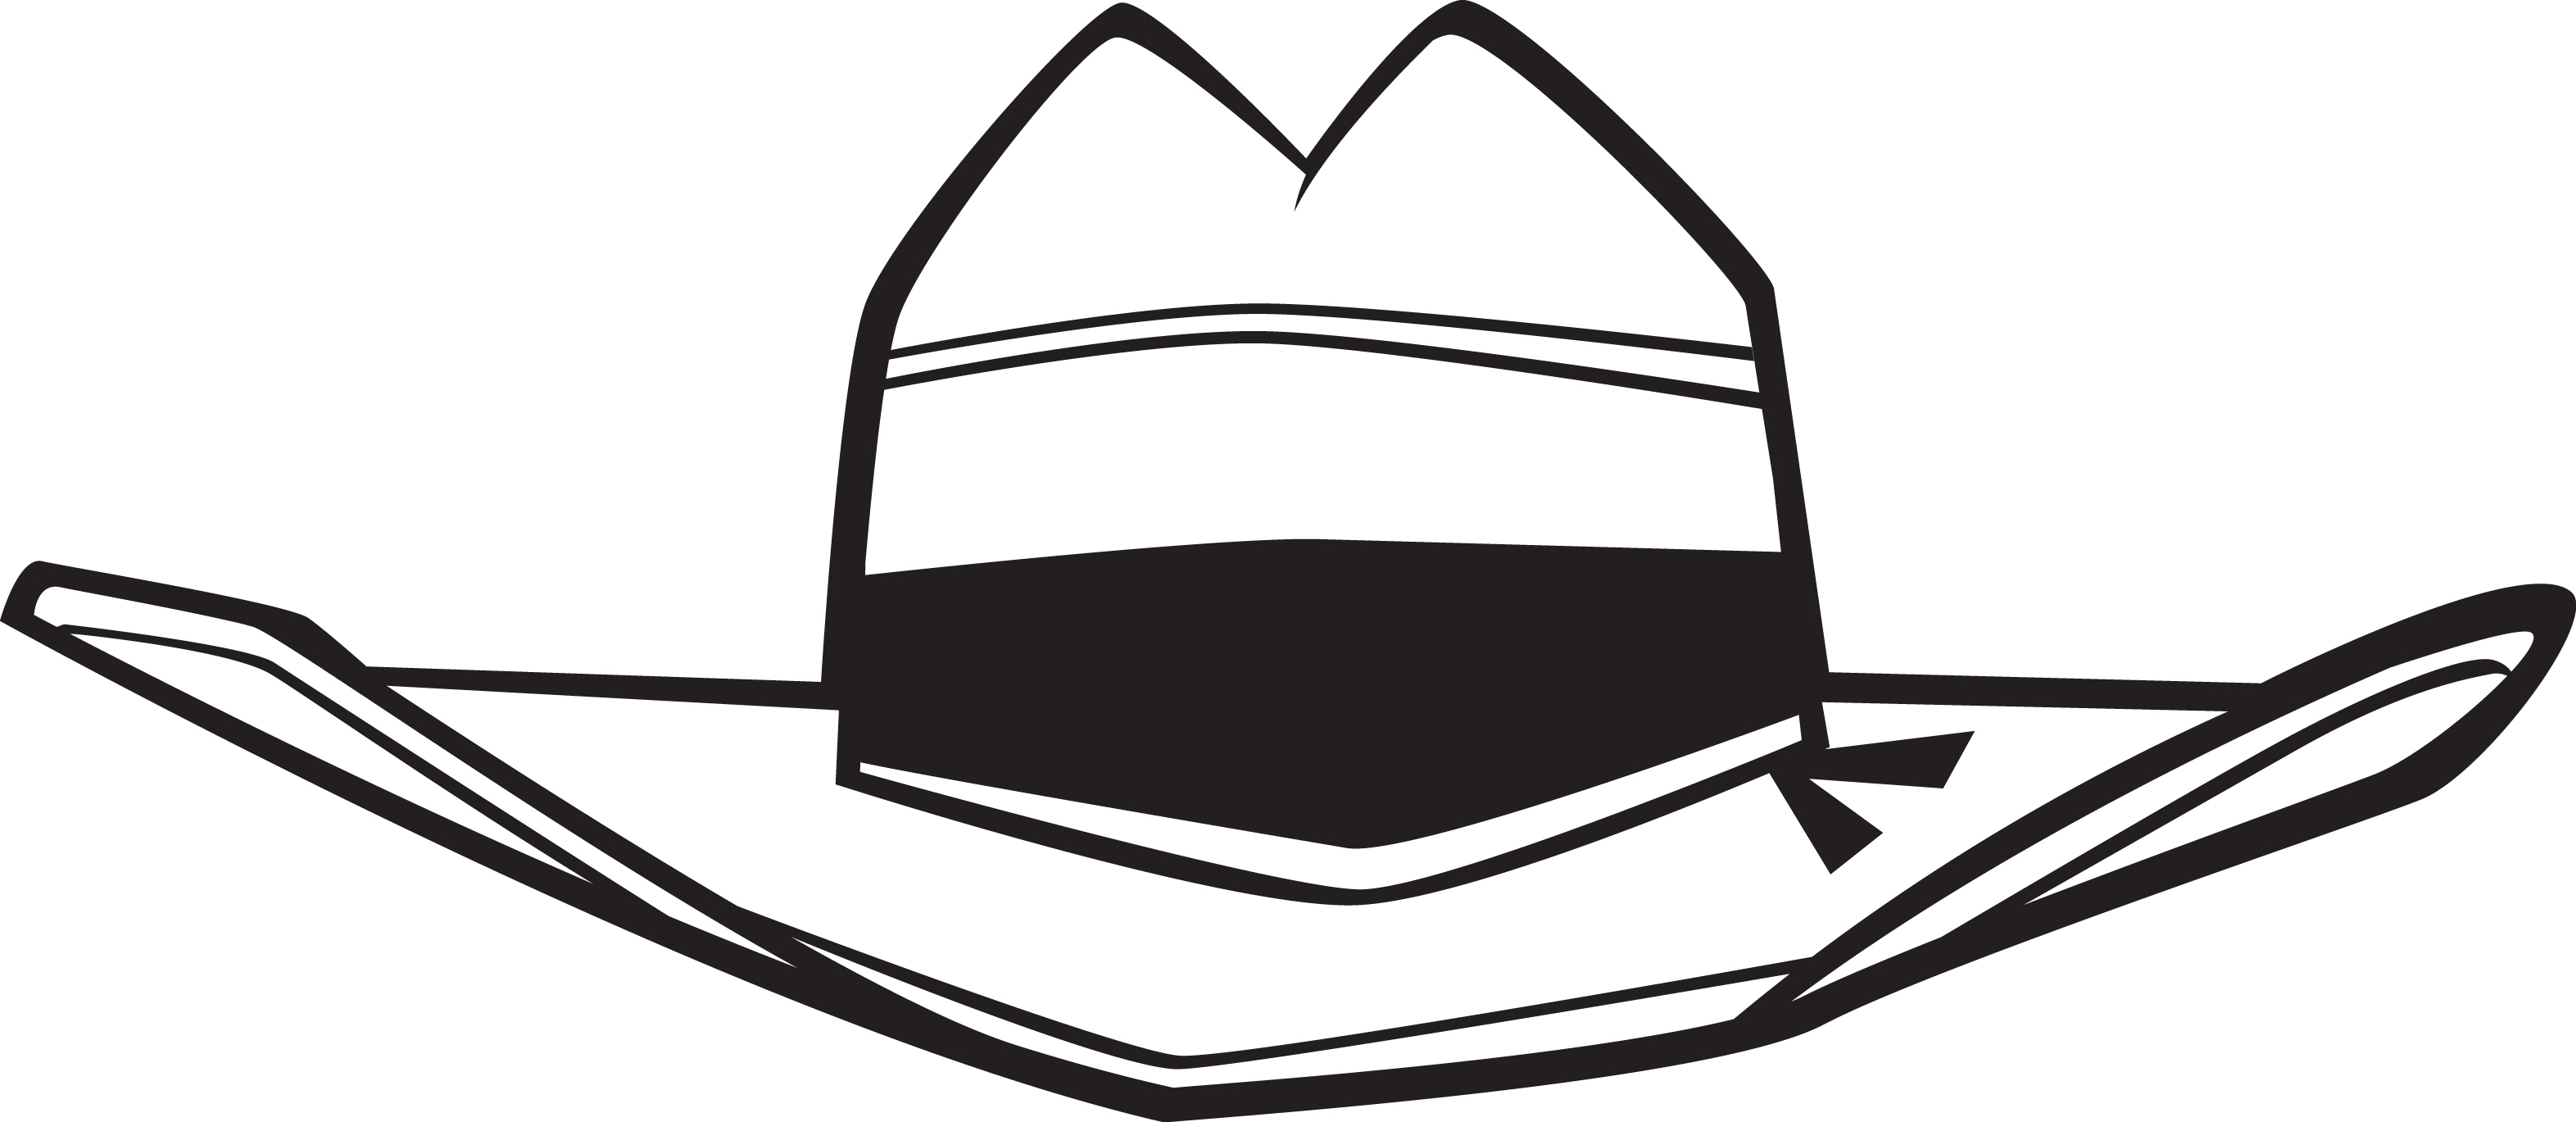 3144x1369 Straw Hat Clipart Black And White